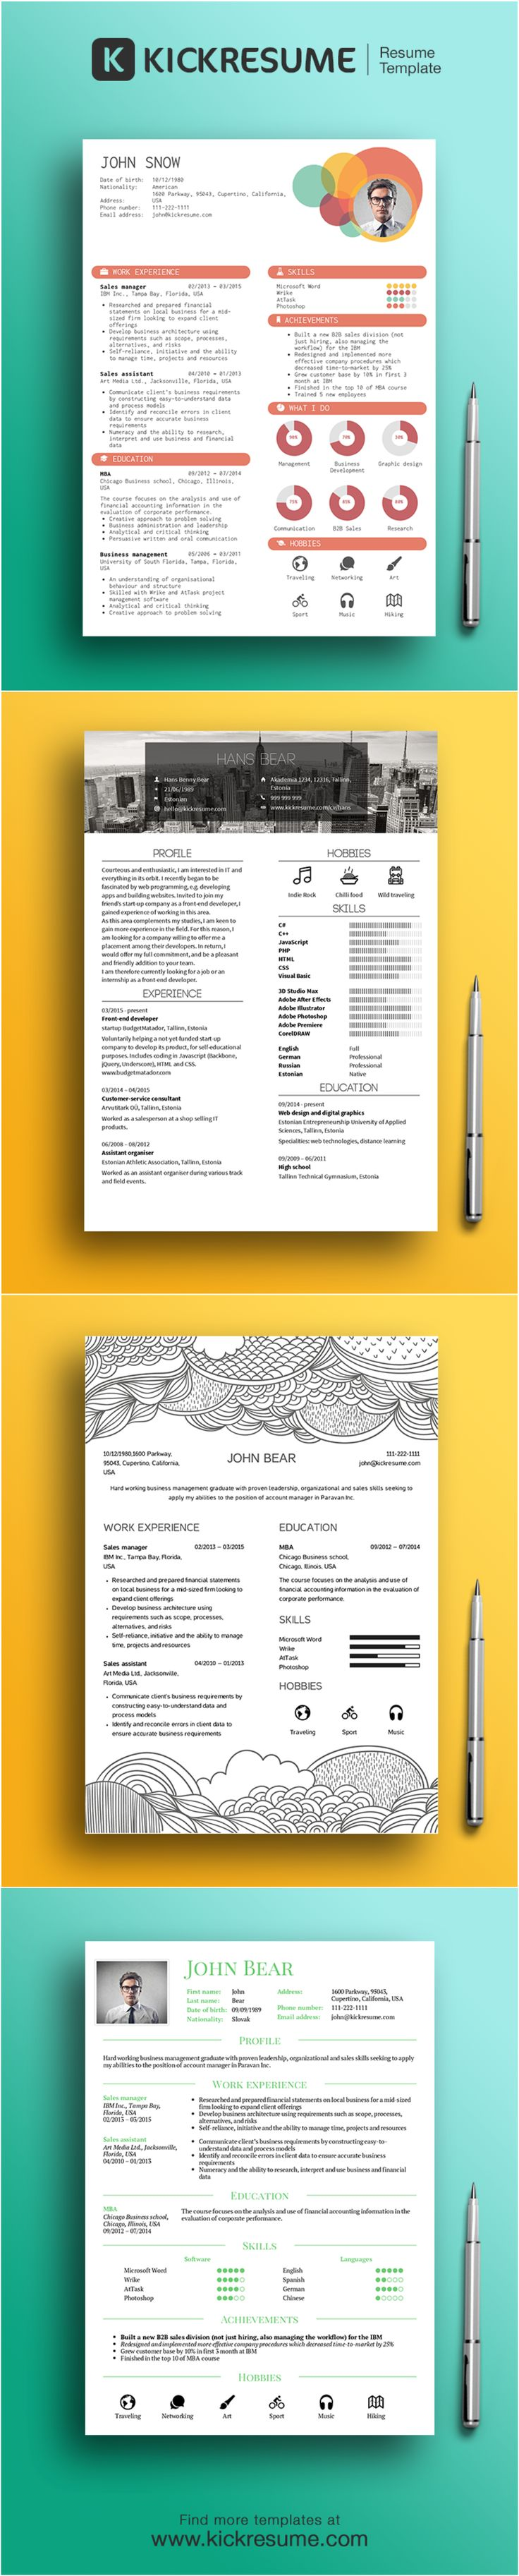 perfect resume and cover letter are just a click away wwwkickresume - Excellent Resume Templates